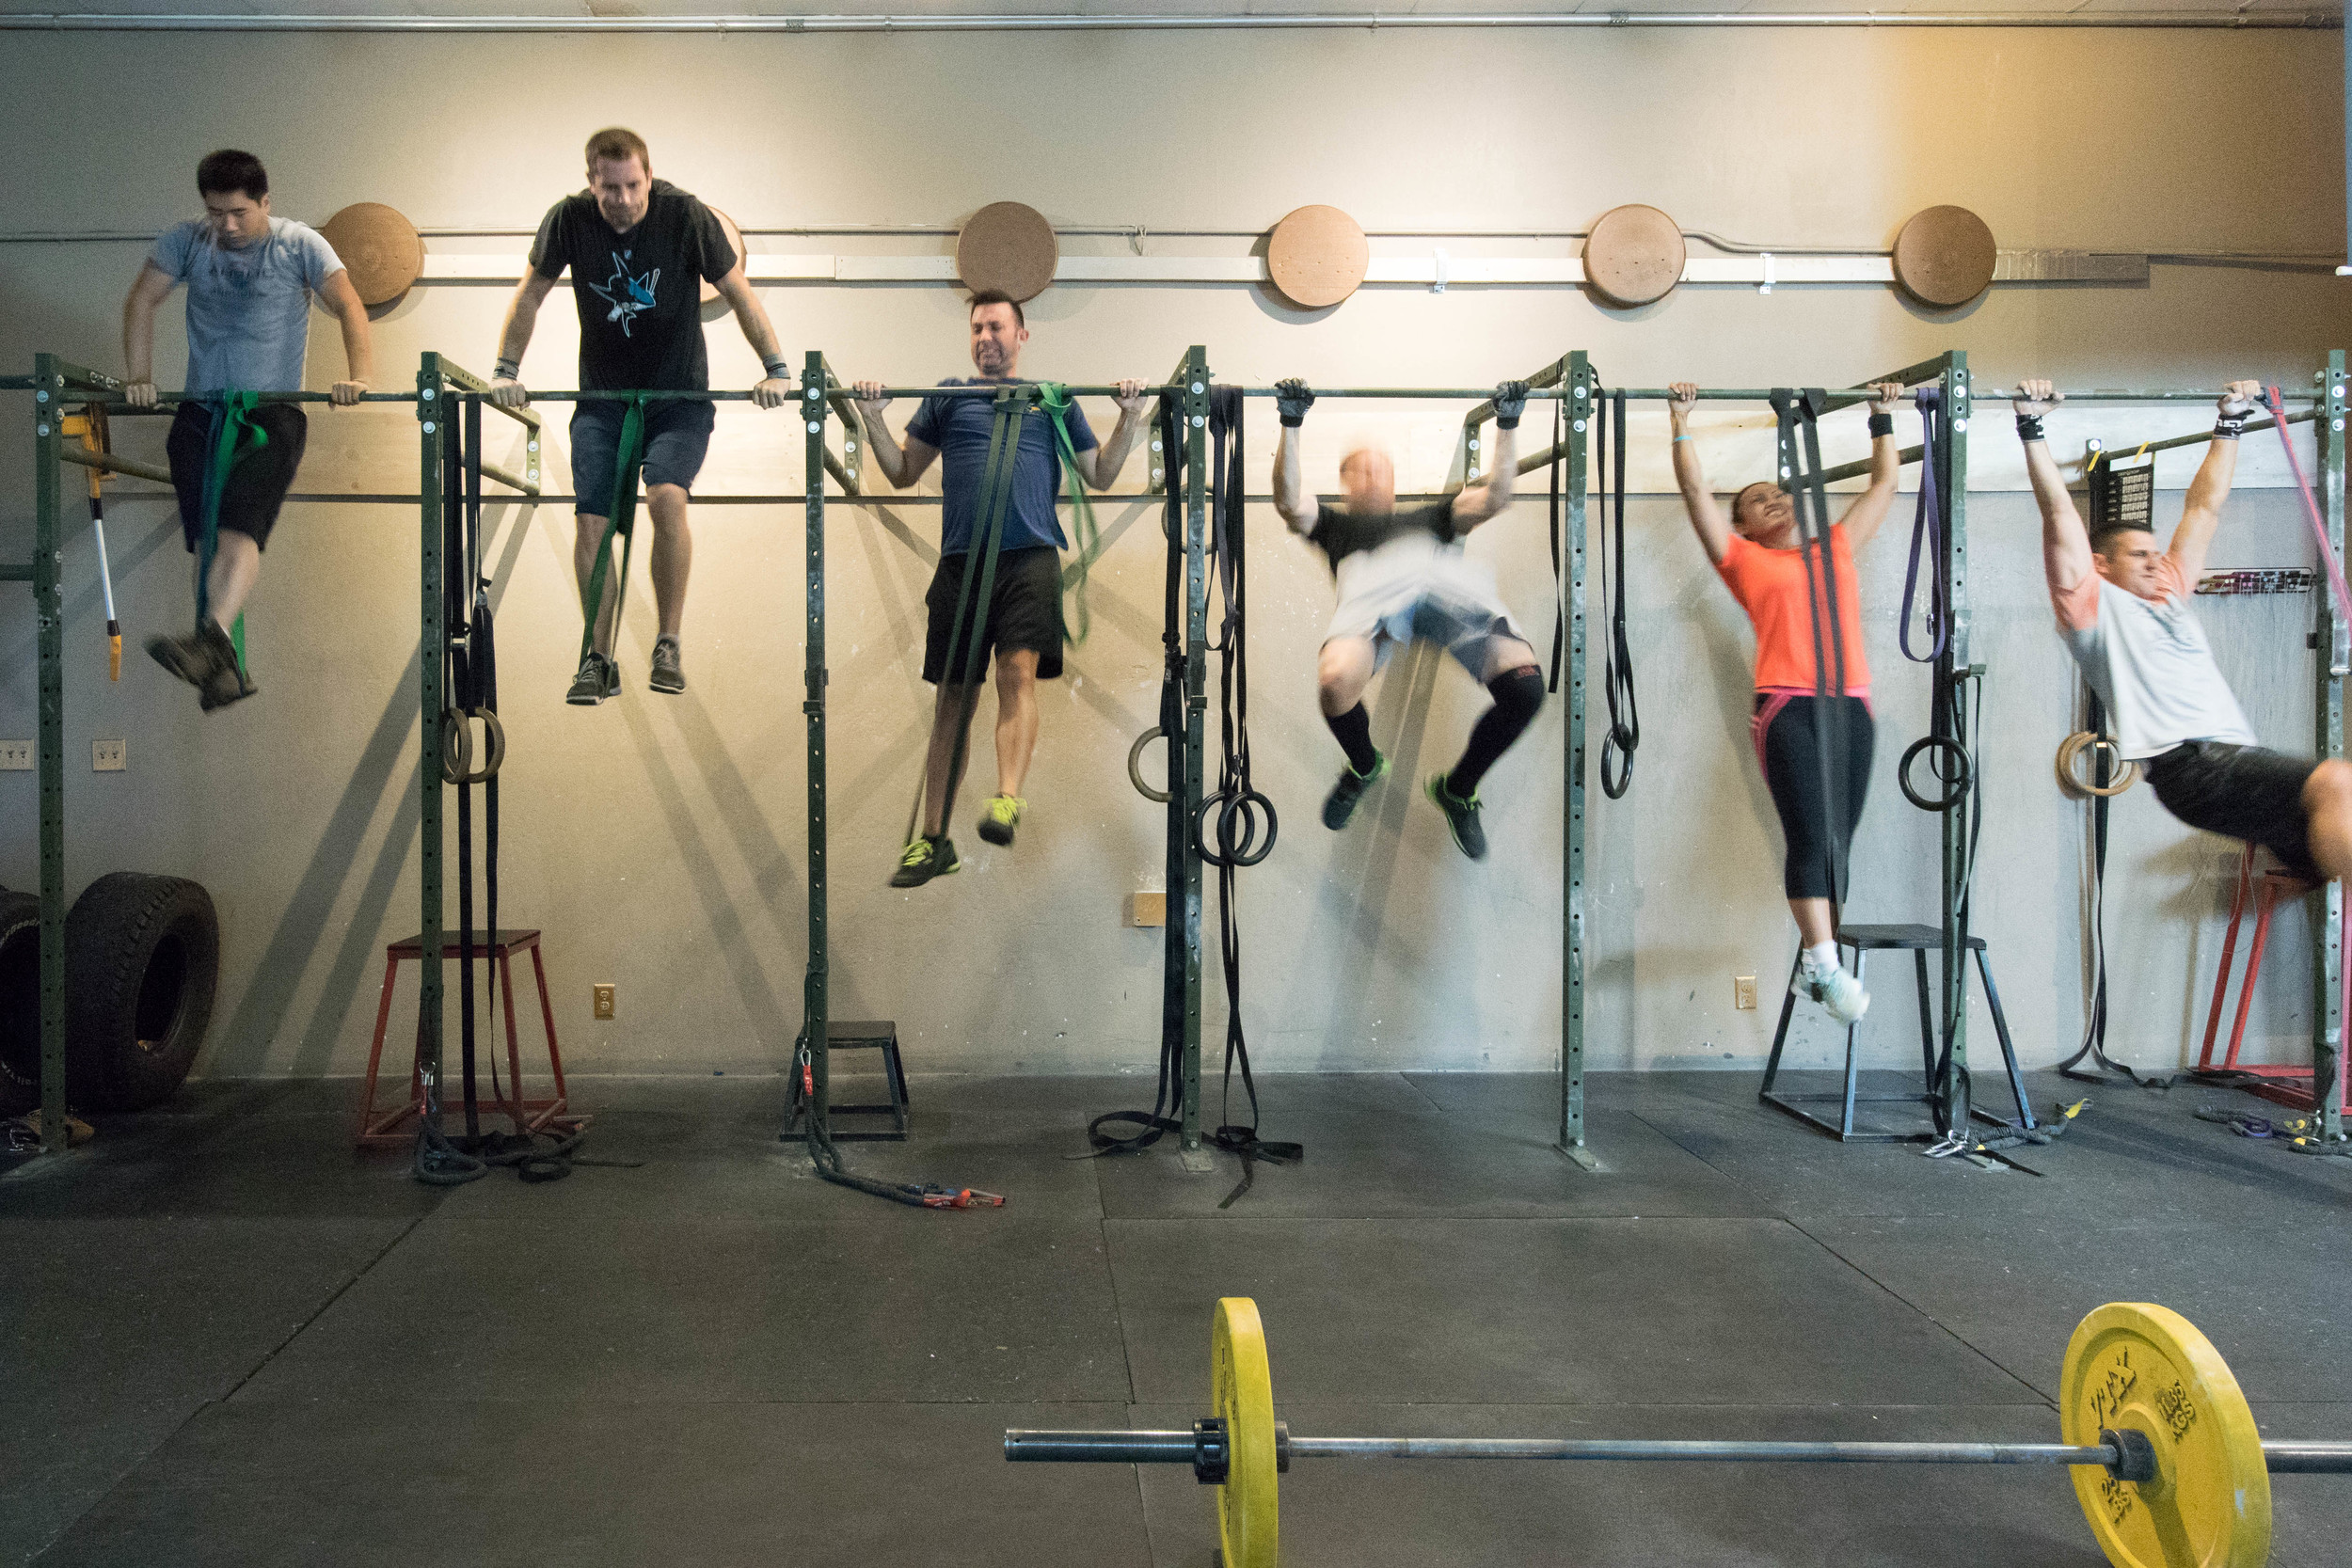 Andrew, Erik, Kalem, Tedd, Lilly and TJ work on the bar muscle up skill!